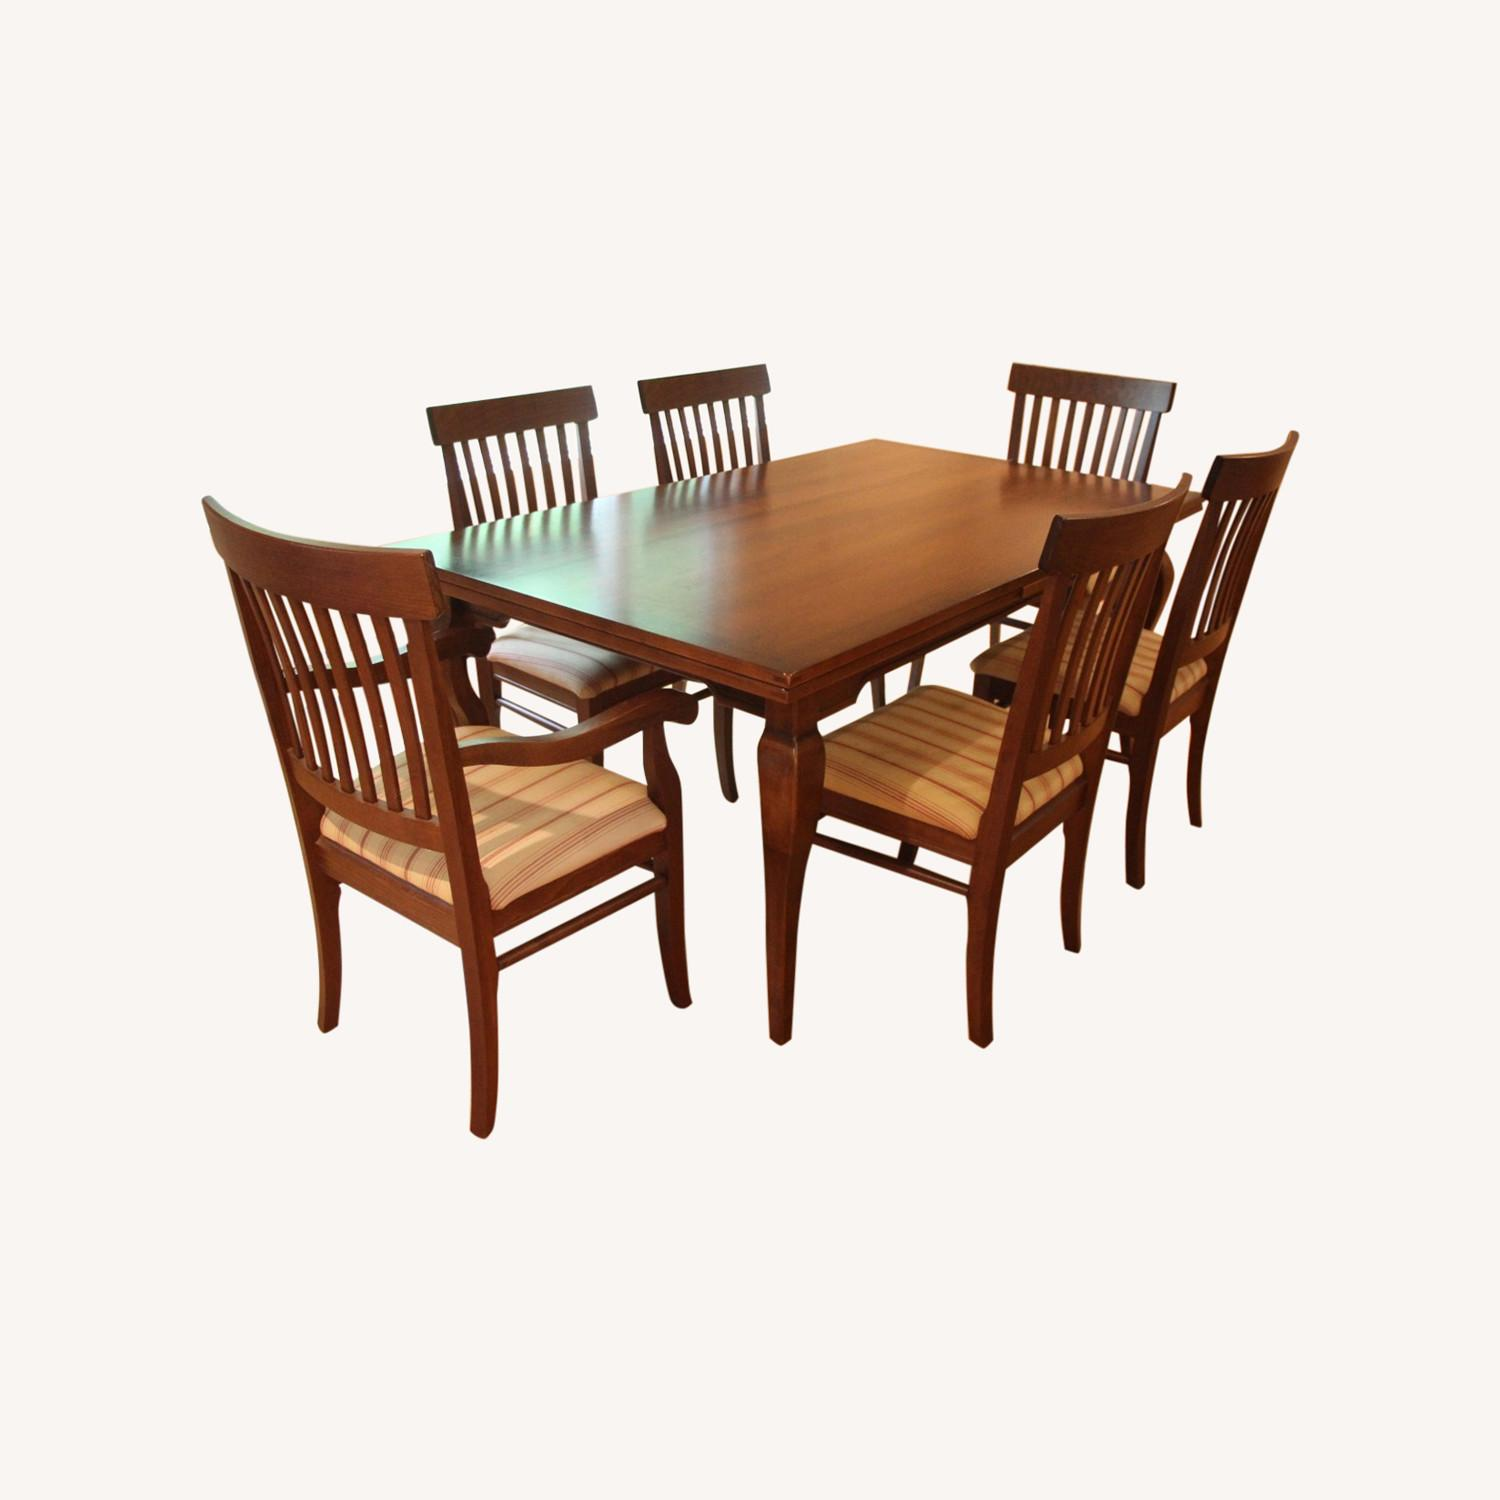 Arhaus Maple Dining Table and Chairs - image-0